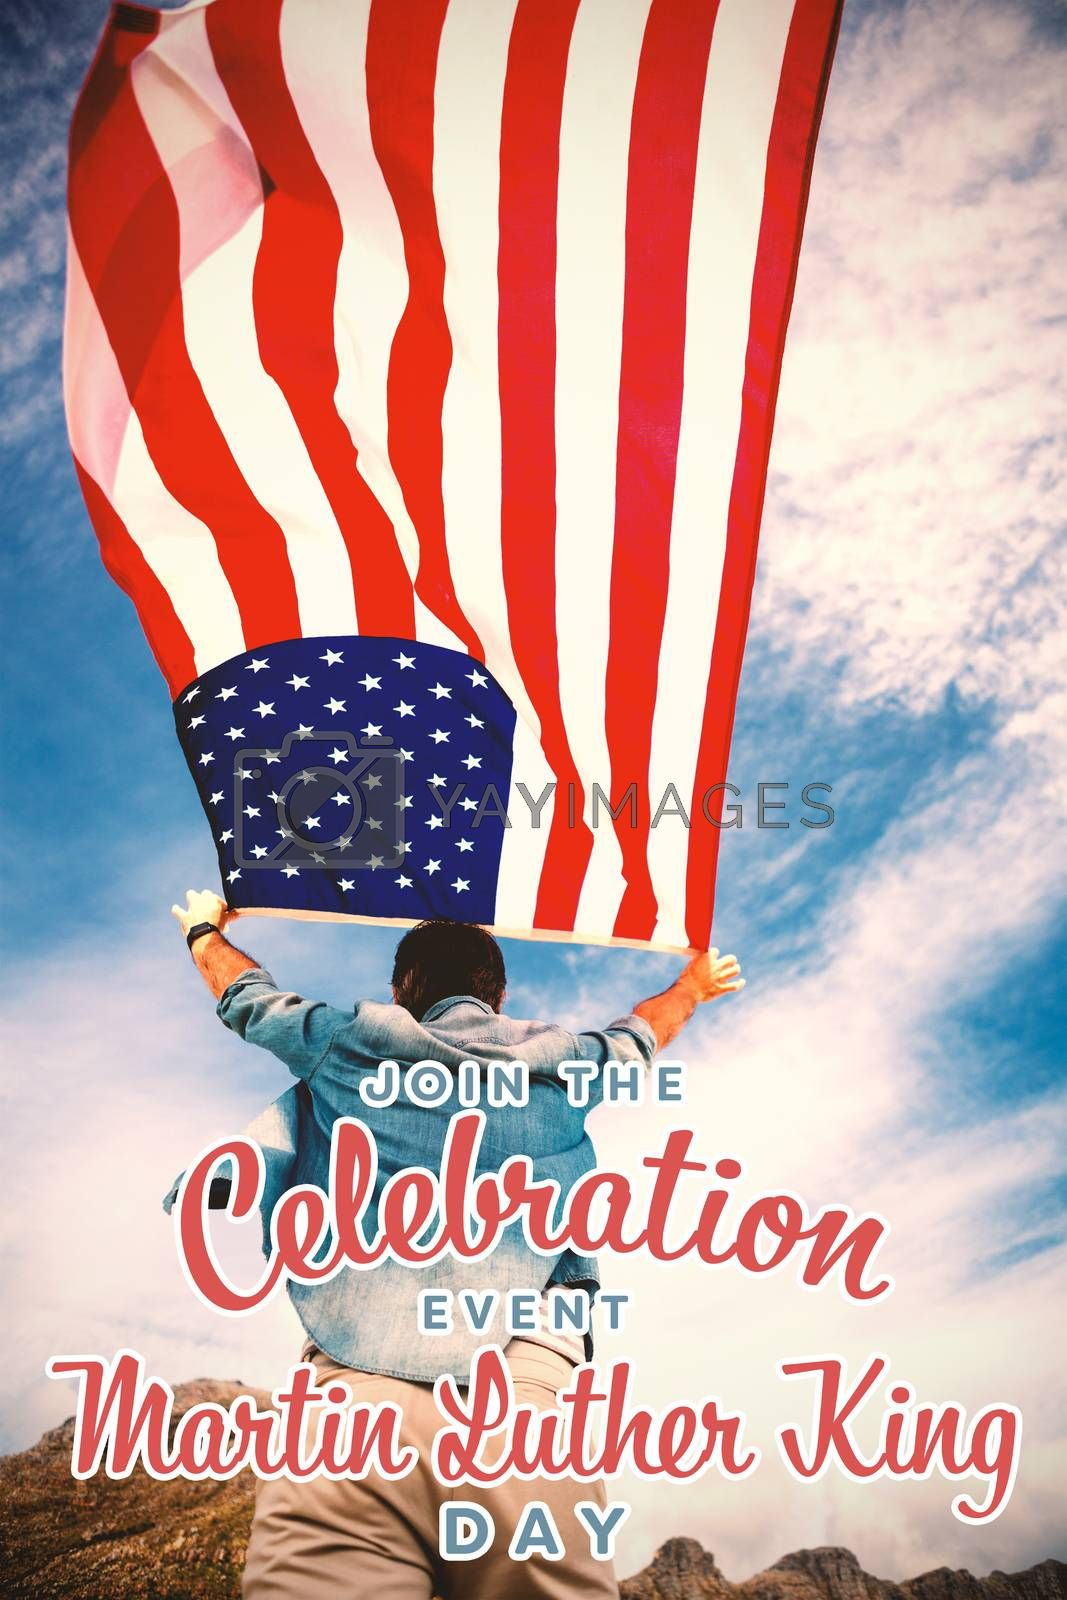 join the celebration event Martin Luther King Day against rear view of man holding american flag against sky